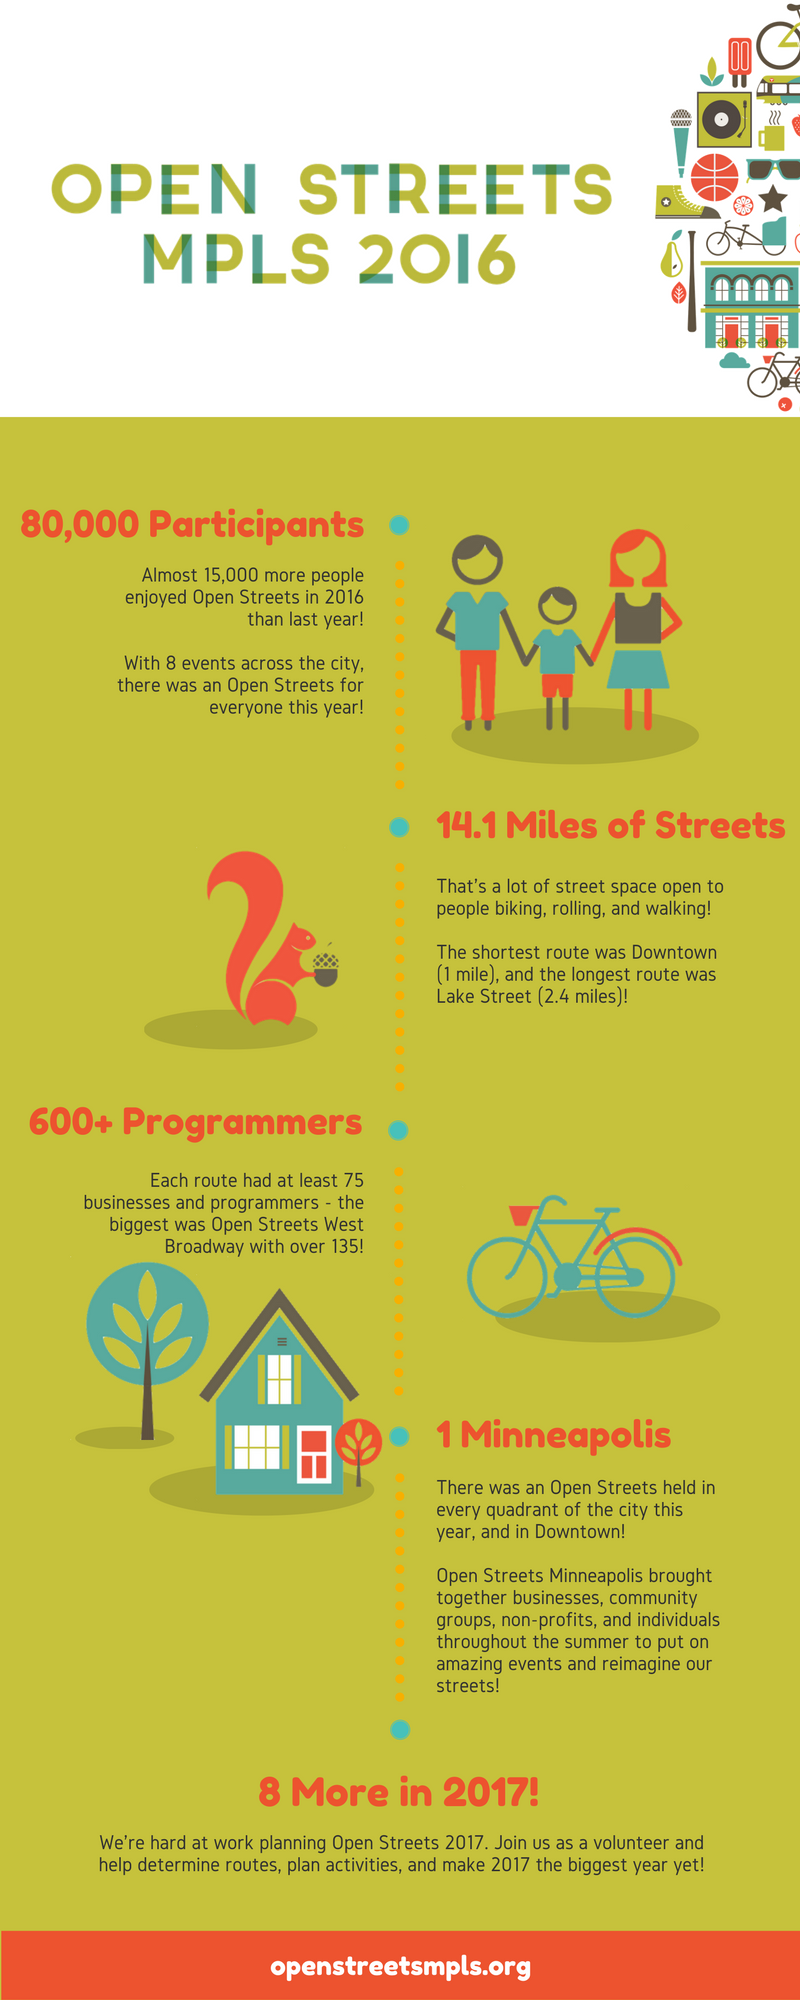 Open Streets 2016 Infographic